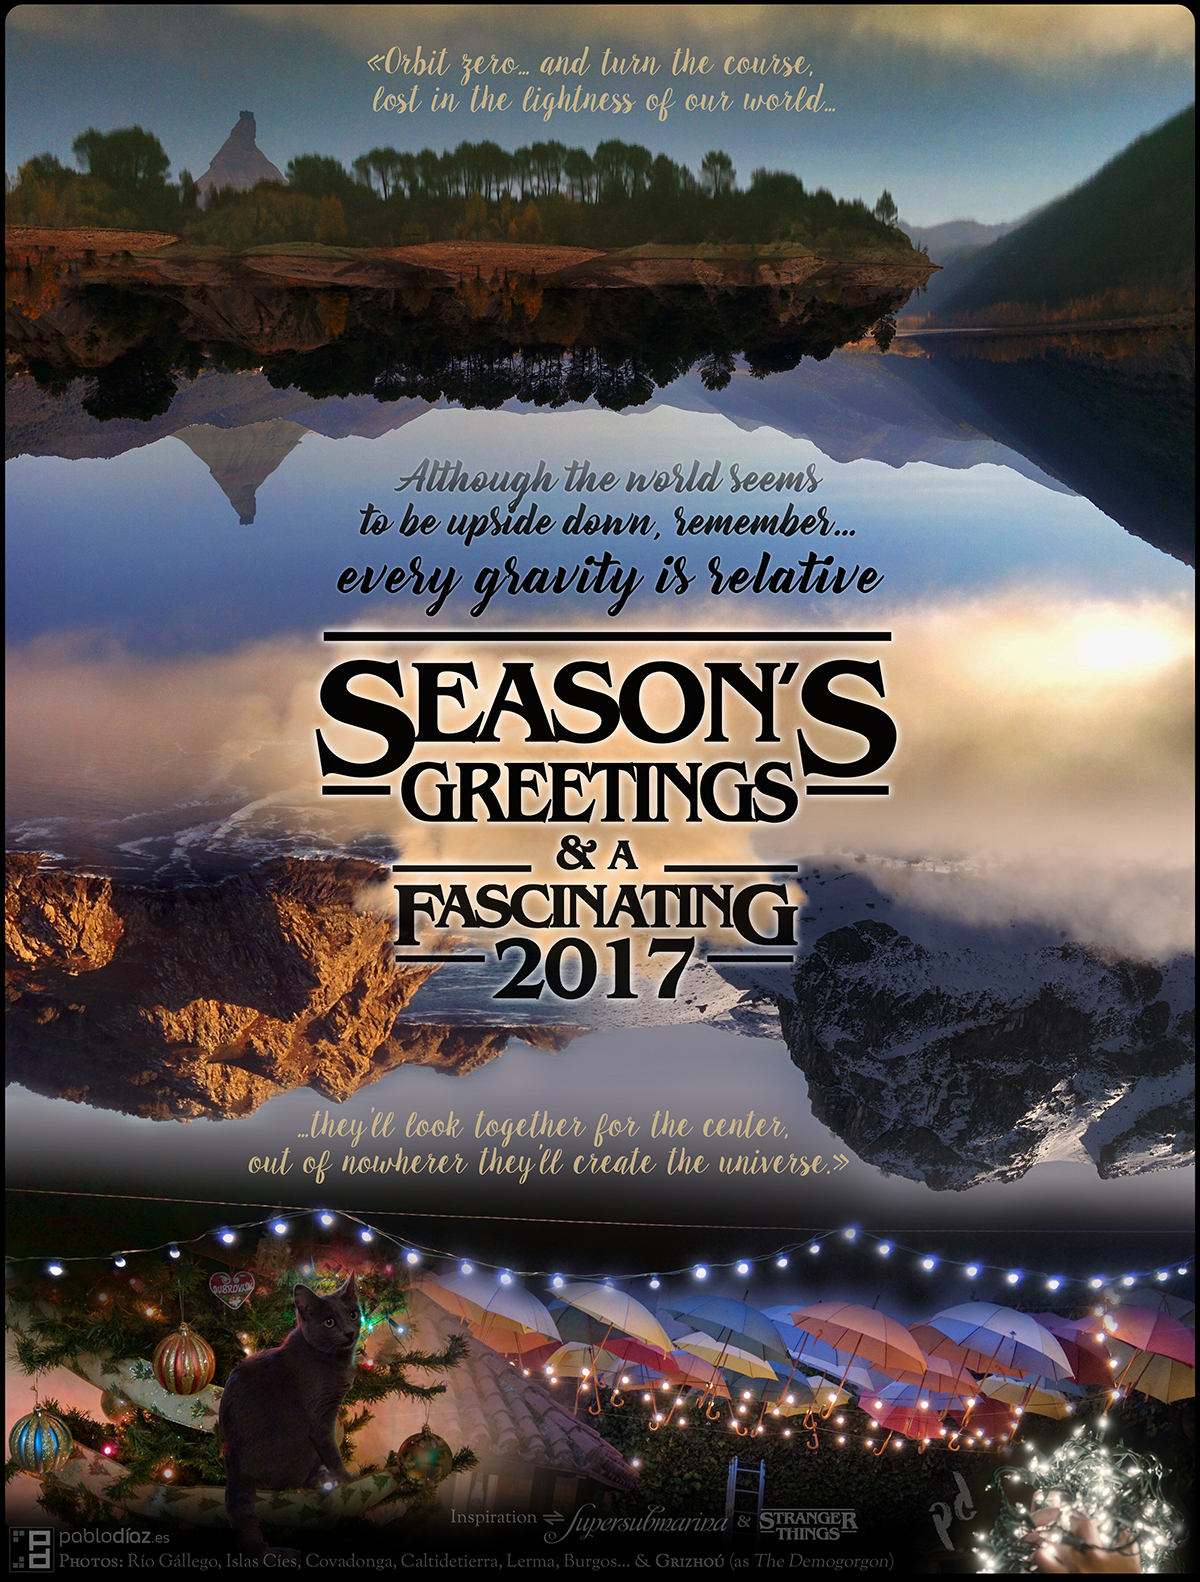 Season's Greetings and a fascinating 2017 - pablodíaz.es